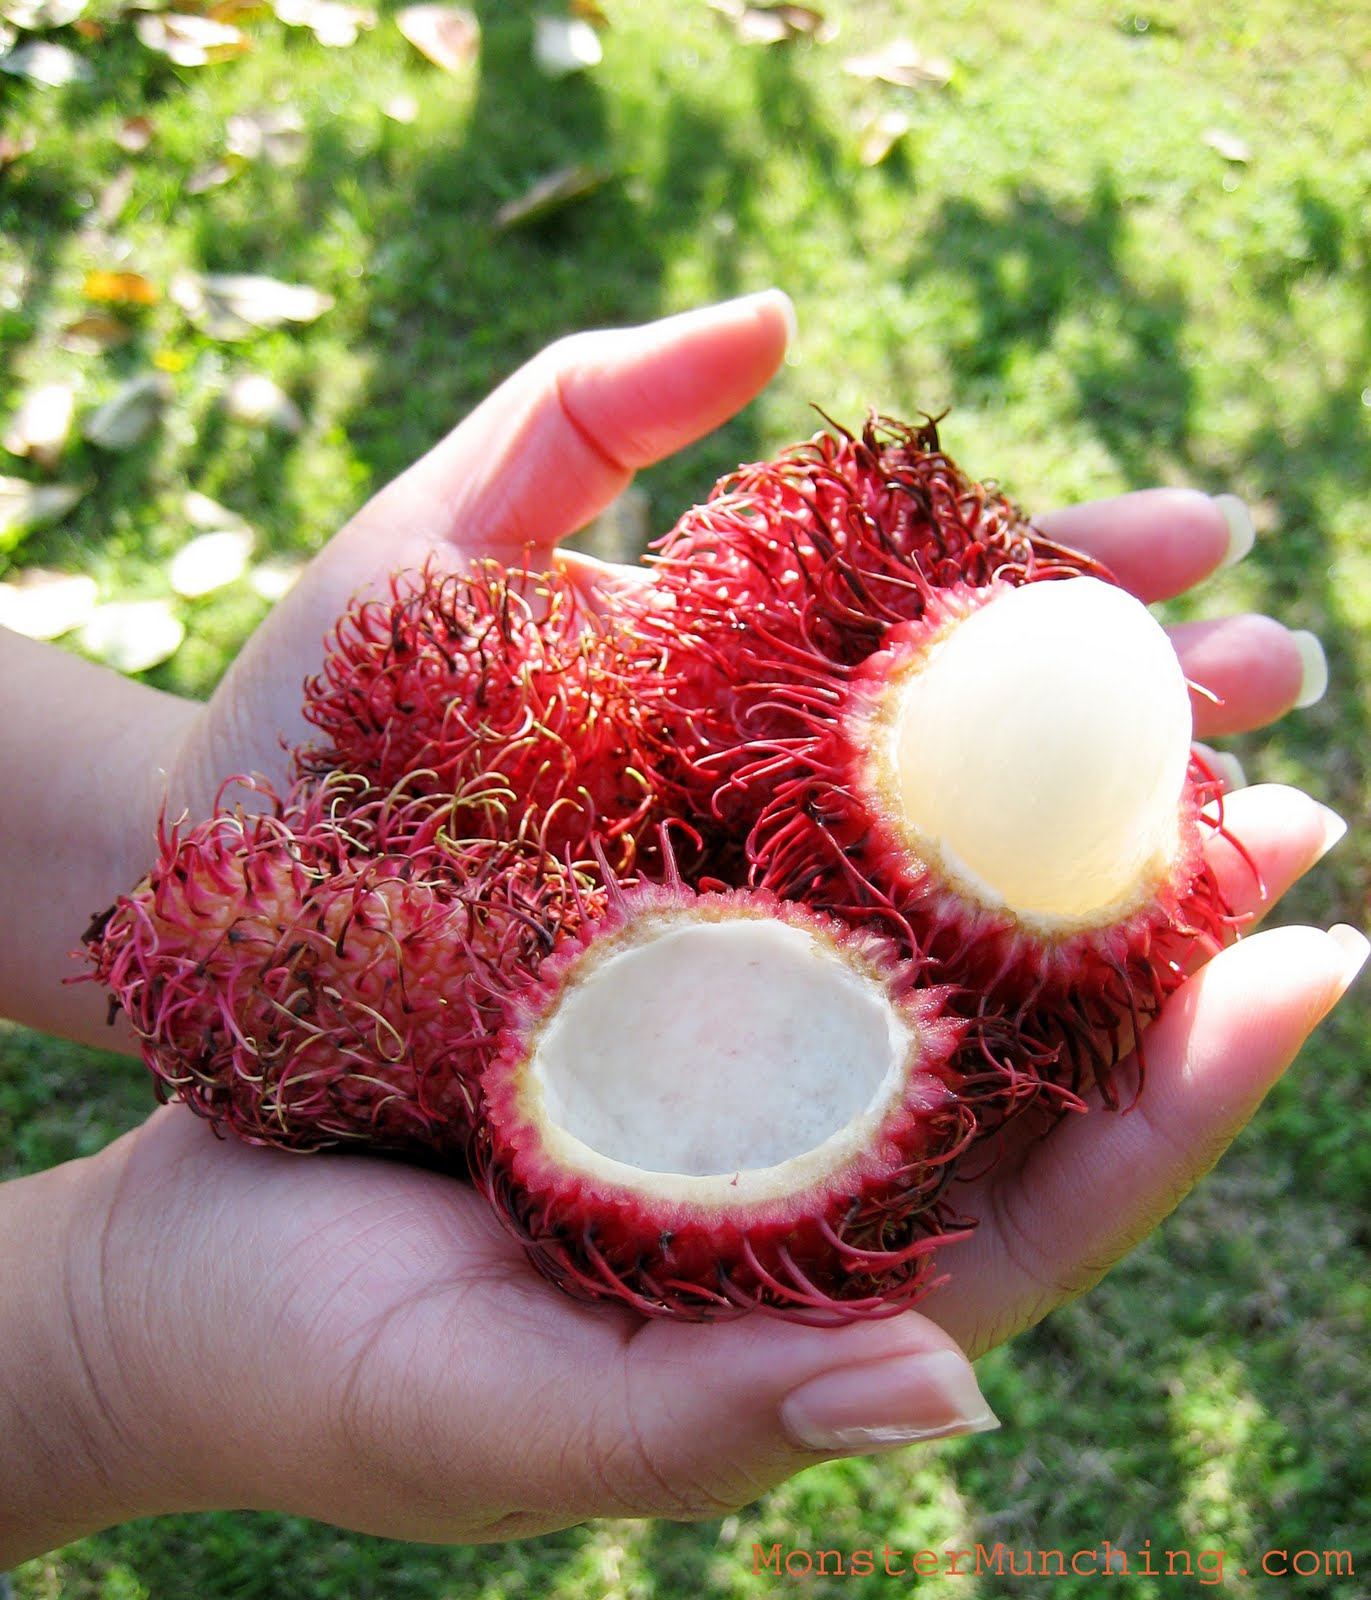 Red Fruit With Spikes http://elmomonster.blogspot.com/2009/11/rambutan-from-ba-tu-trai-cay-ngon.html